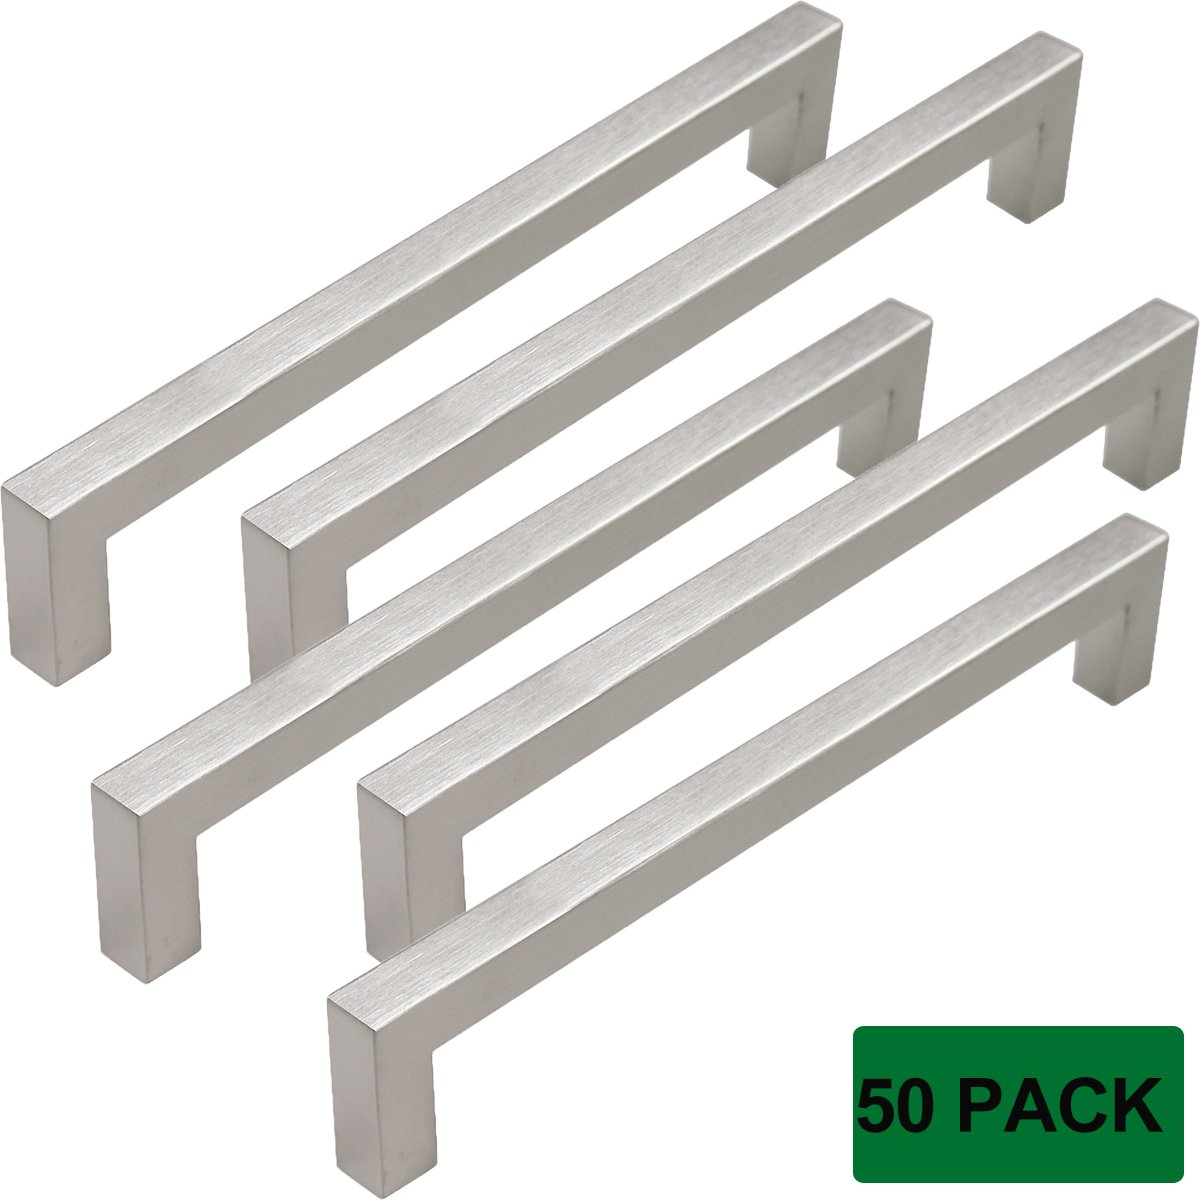 Probrico Brushed Nickel Square Bar Kitchen Cupboard and Dresser Door Handles and Pulls 7-9/16'' Hole Spacing, 50 Pack